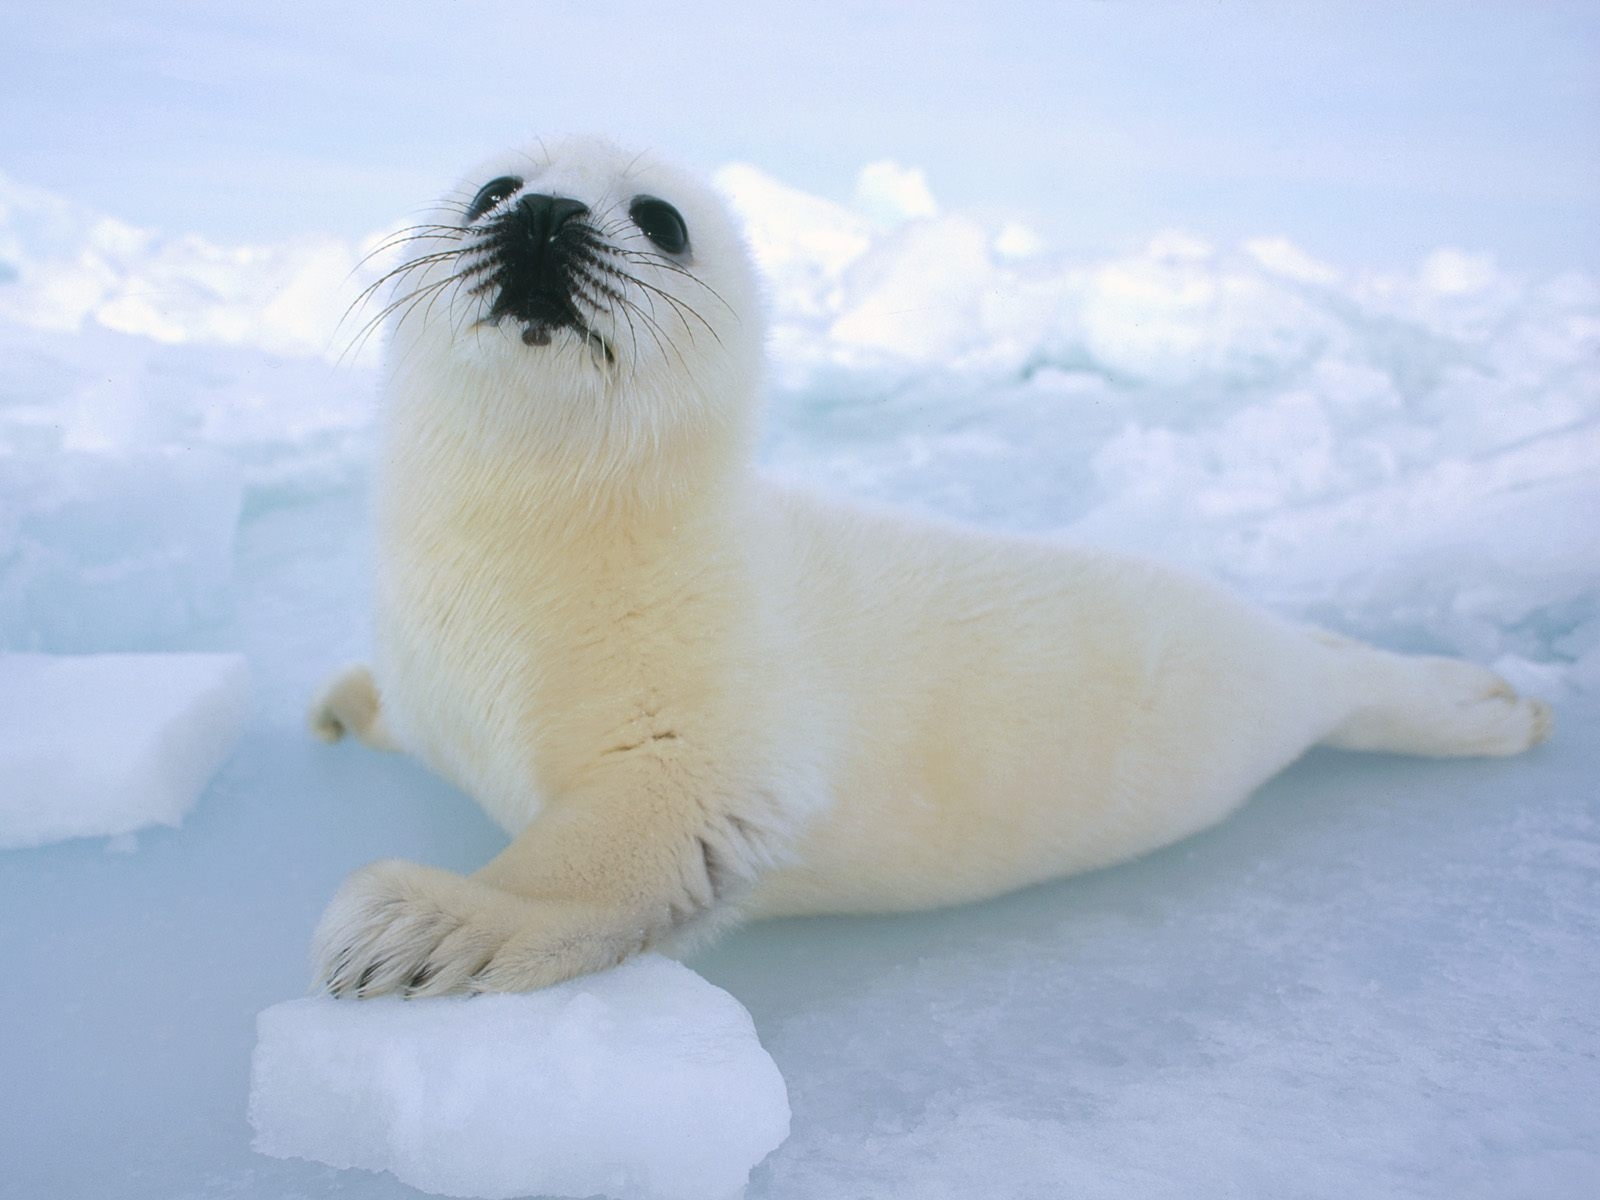 Baby harp seal - when he grows up, he could be an astronomer (care2